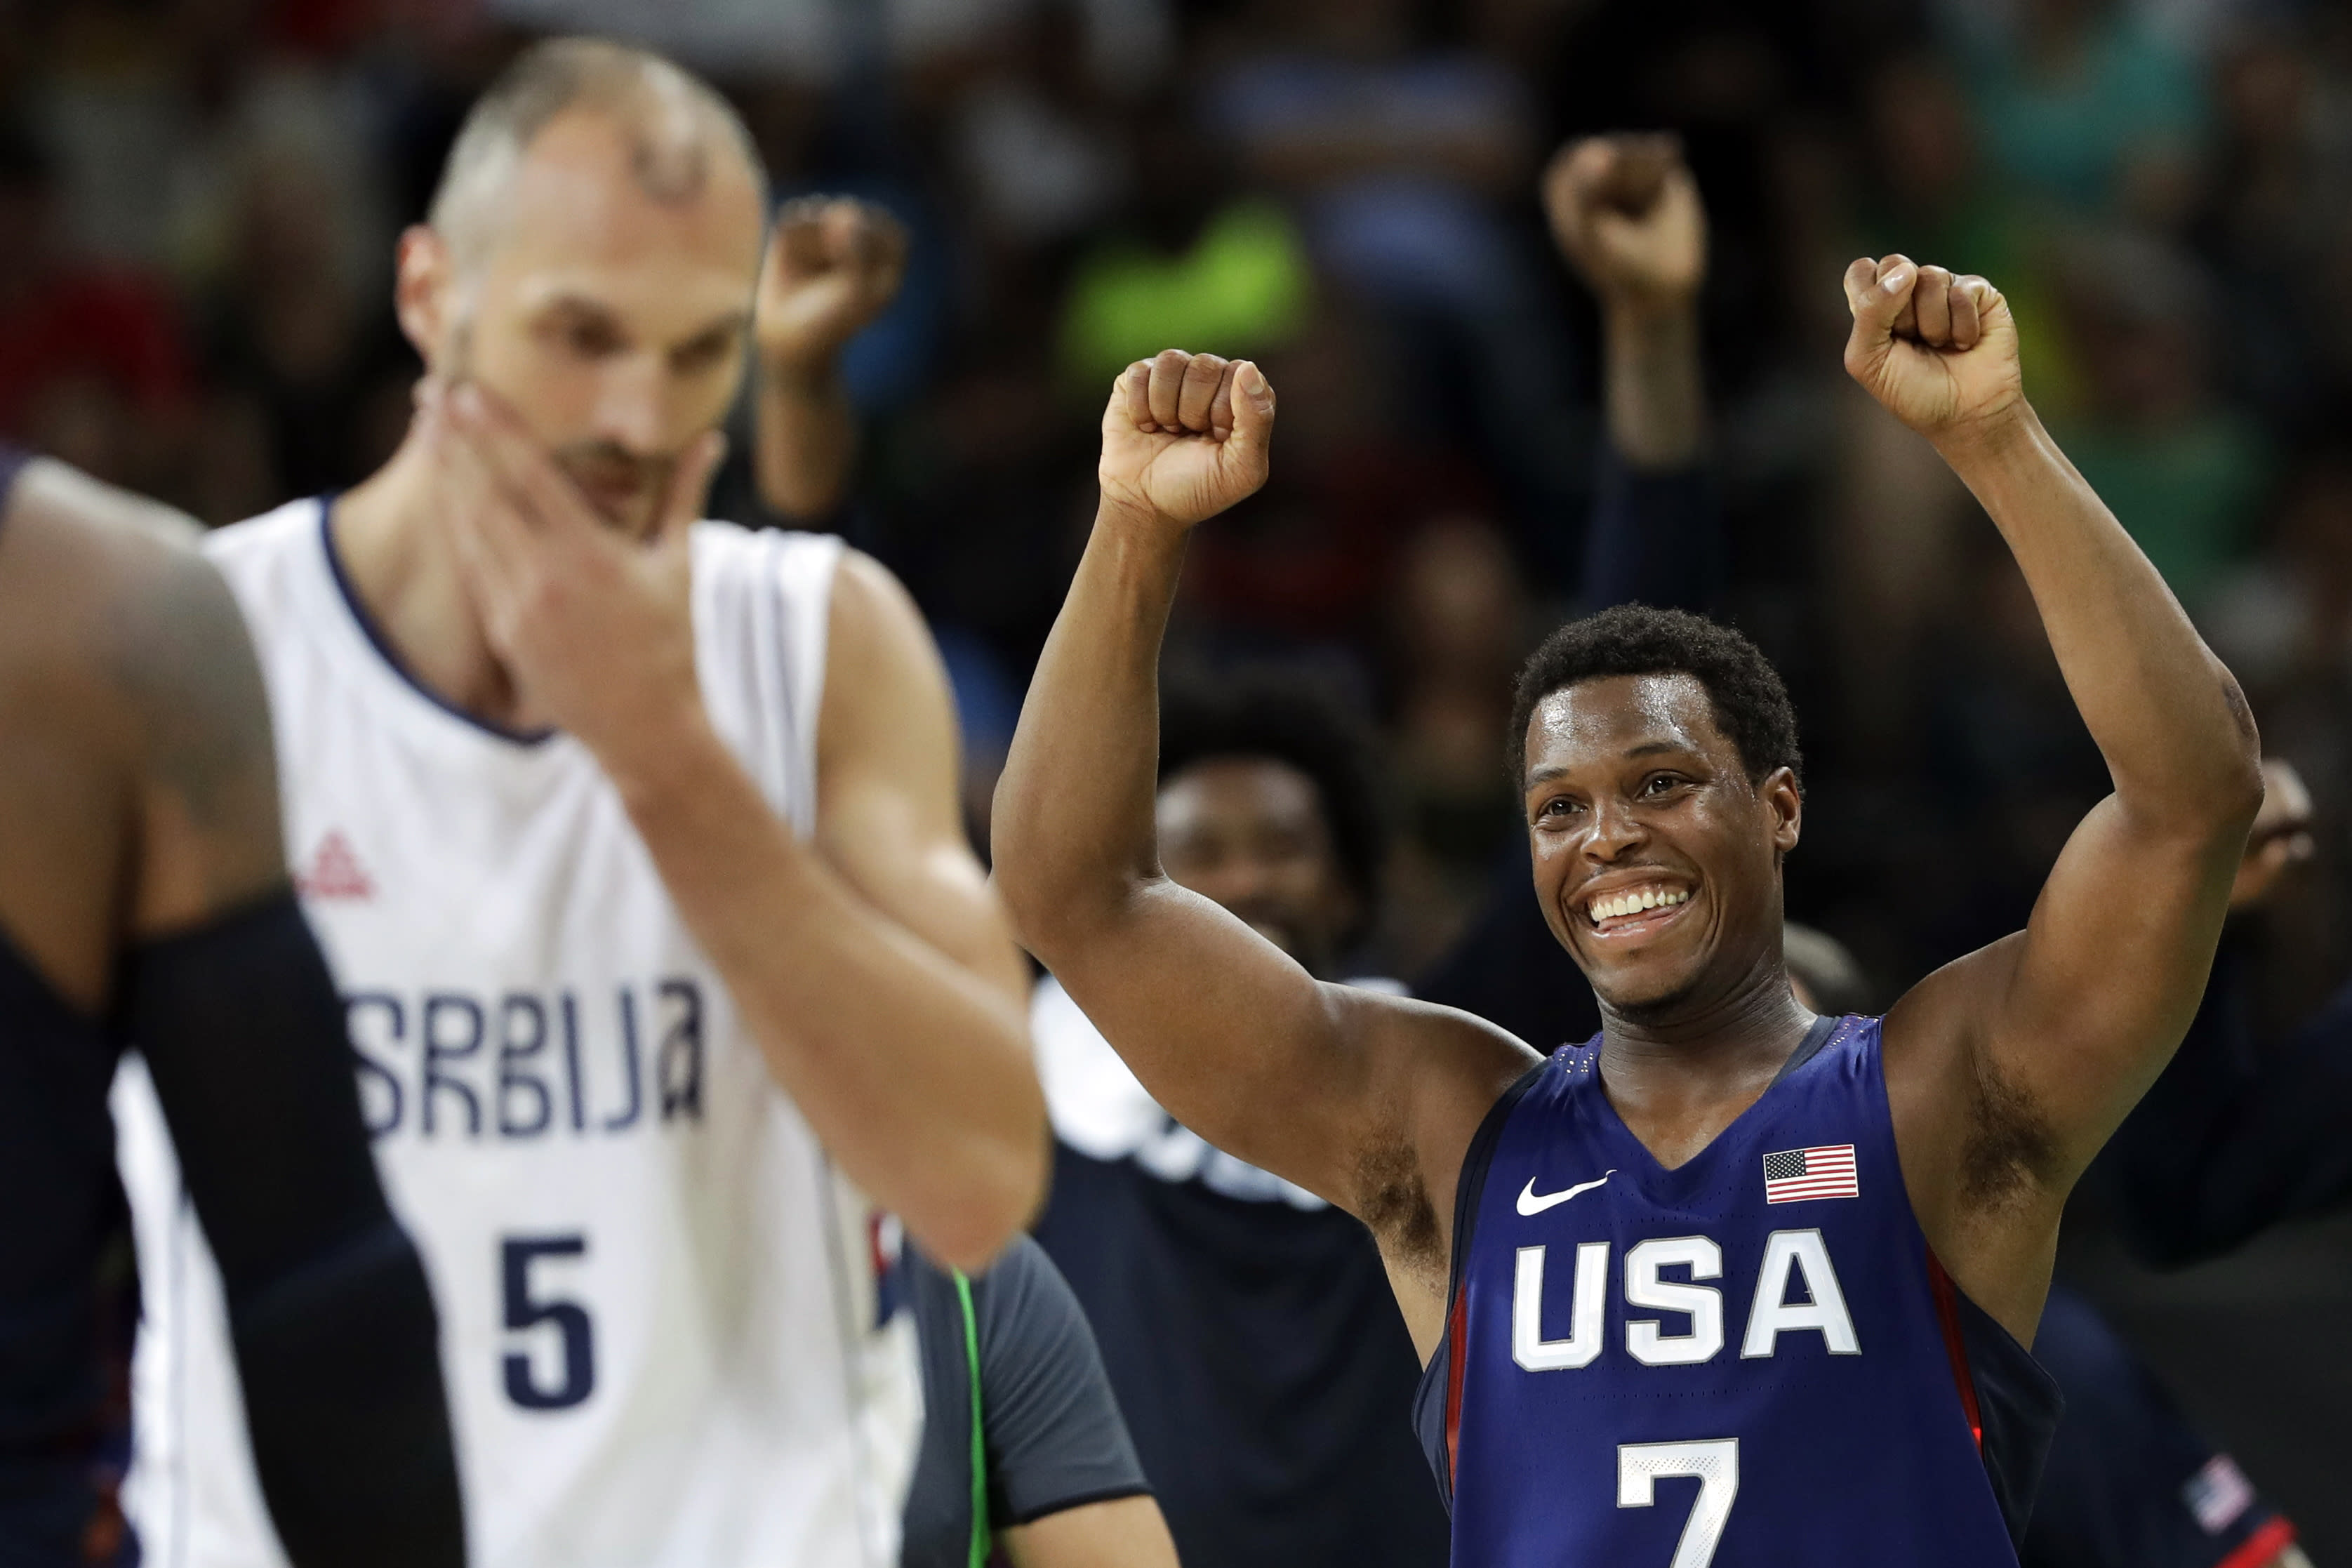 FILE - In this Aug. 21, 2016, file photo, United States' Kyle Lowry (7) celebrates near Serbia's Marko Simonovic (5) in the men's gold medal basketball game at the 2016 Summer Olympics in Rio de Janeiro, Brazil. Lowry has spent an extended stretch away from home during the summer. While unprecedented as part of an NBA season, it isn't exactly a foreign concept for those with USA Basketball experience like the Olympics and the World Cup.(AP Photo/Eric Gay, File)